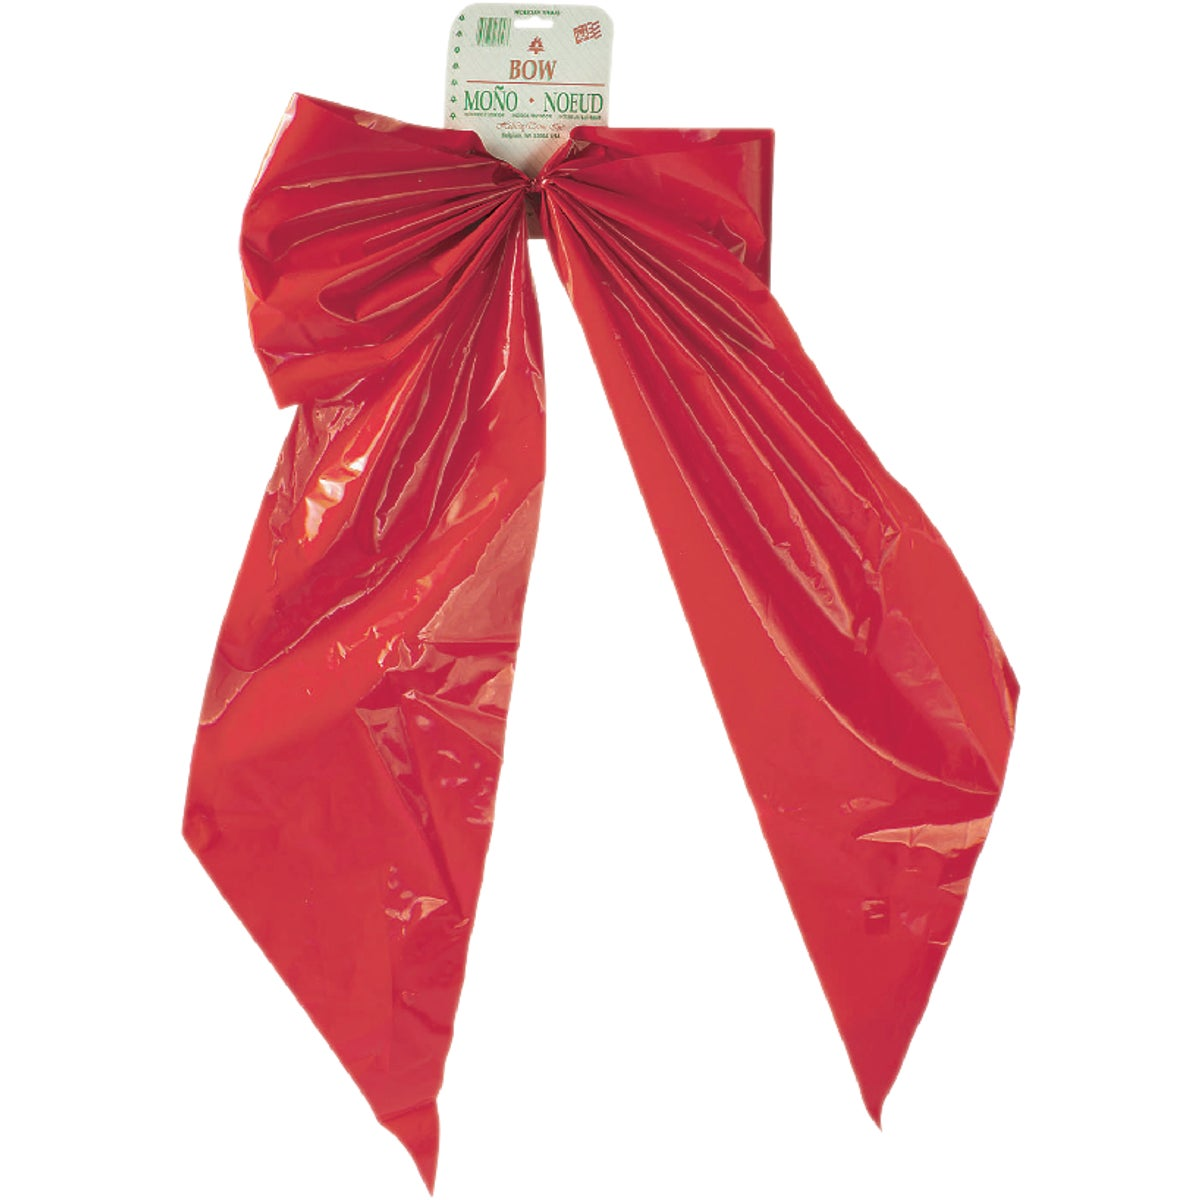 18X31 RED PLASTIC BOW